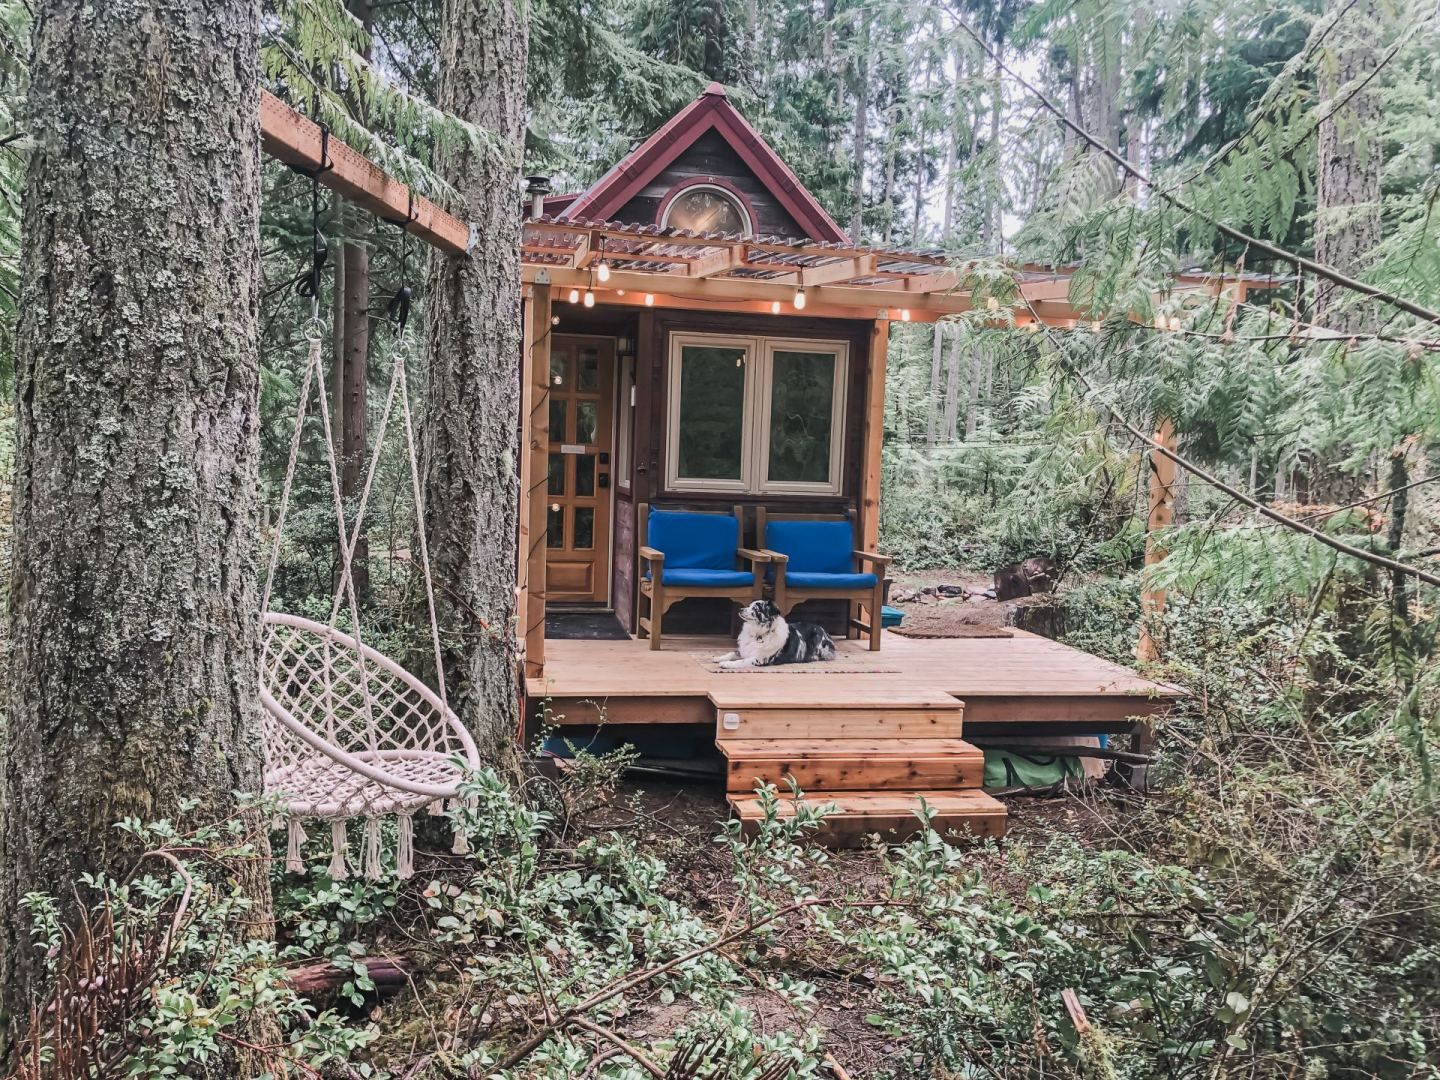 My New Tiny House Porch was Built for $2,000 in a Wooded Oasis Small Mobile Home Porch Plans Diy on deck plans, diy screened in back porch ideas, mobile home covered porch plans, diy decks and porches, double wide mobile home floor plans,